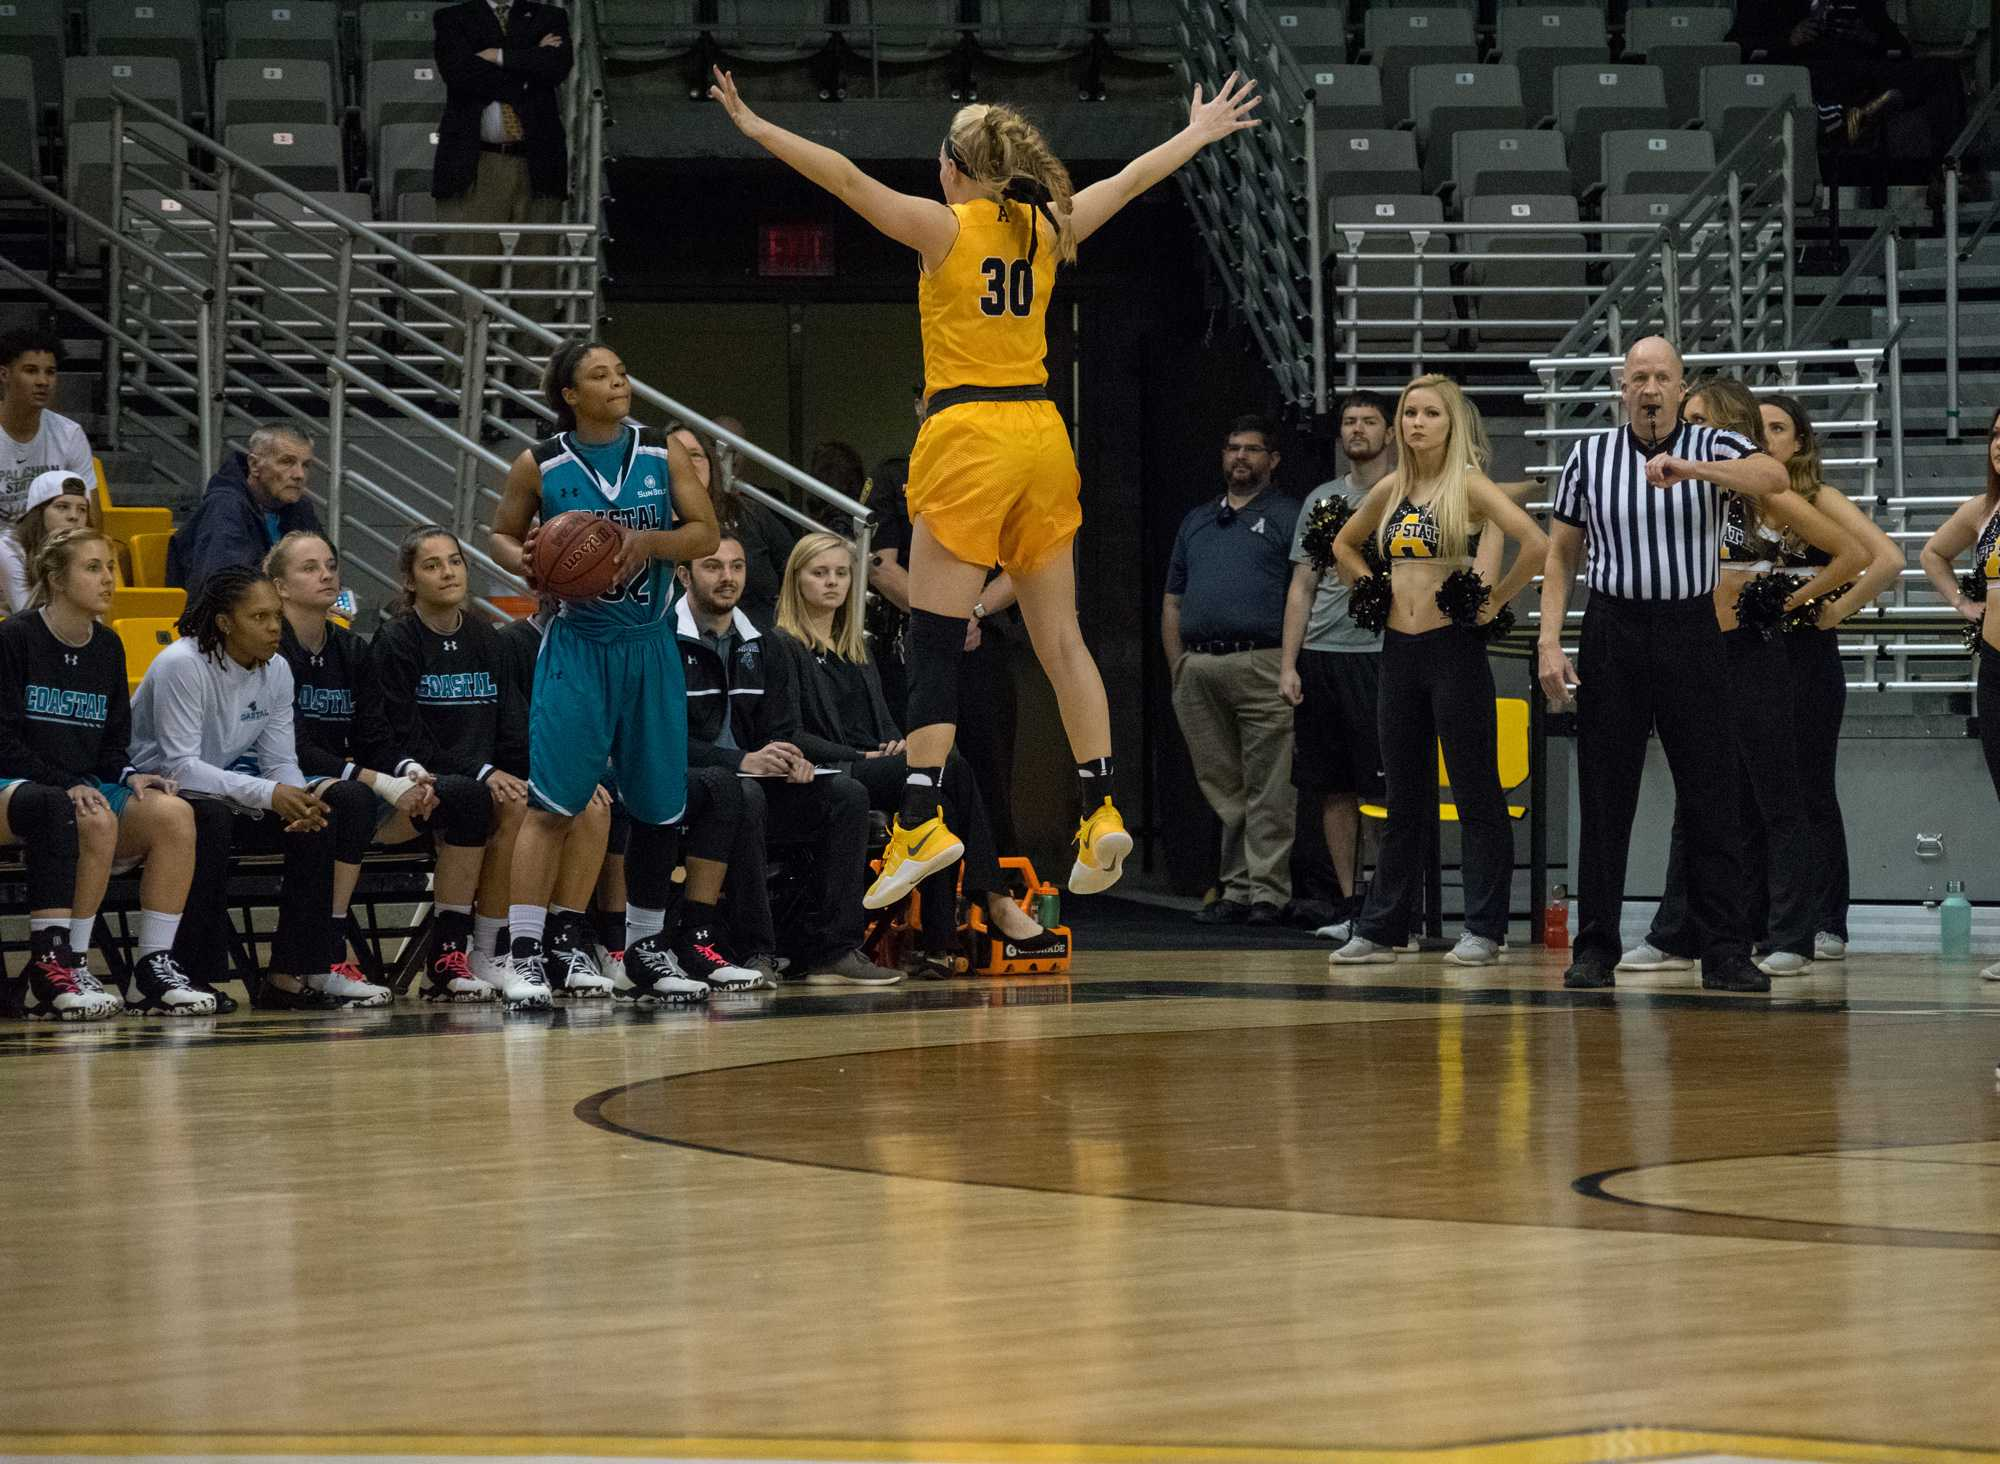 Disappointing ending to Mountaineers senior night